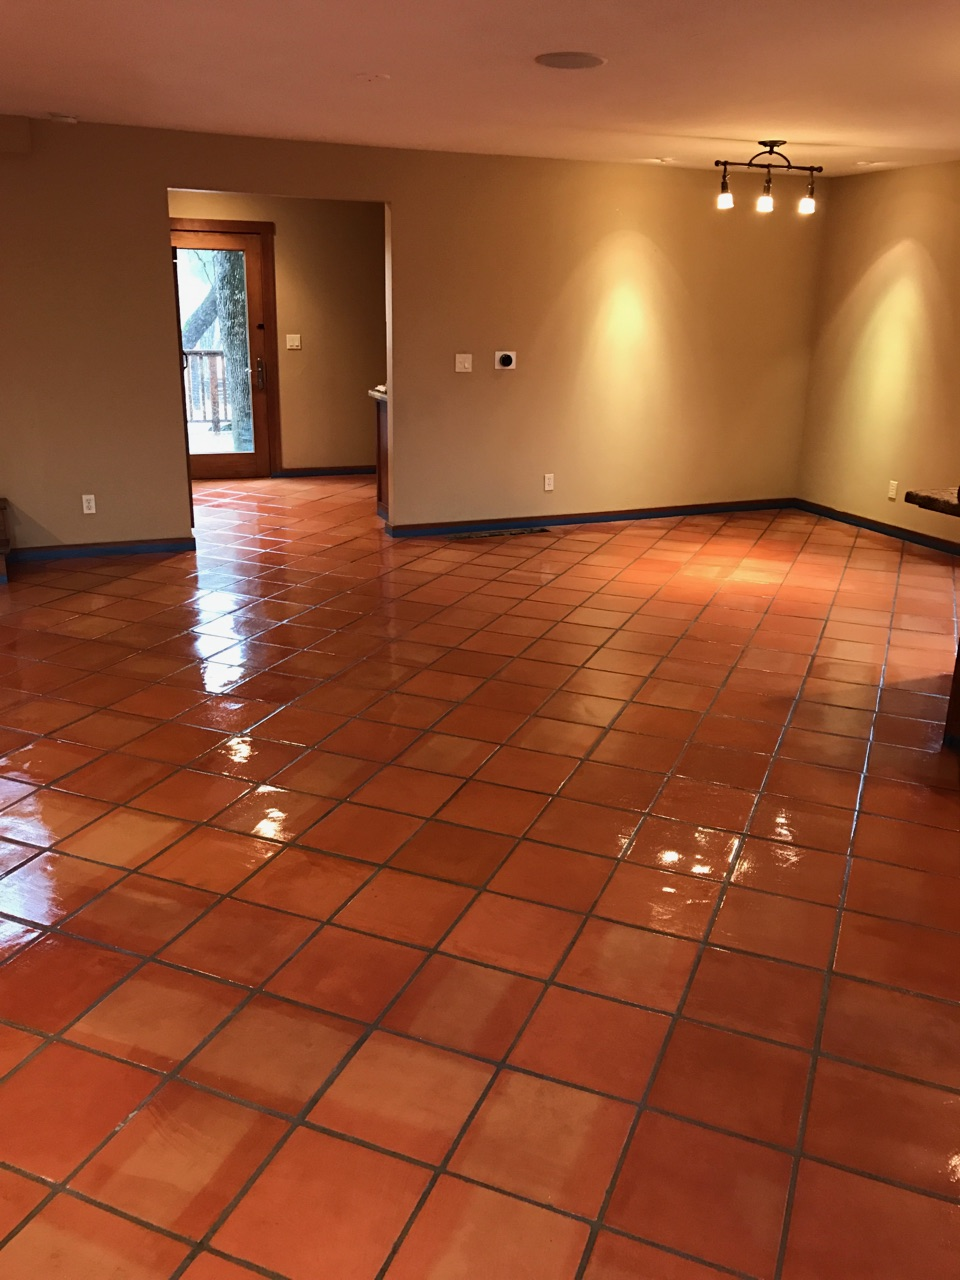 2 Common Terracotta Tile Restoration & Refinishing Misconceptions You Need To Know About and Why